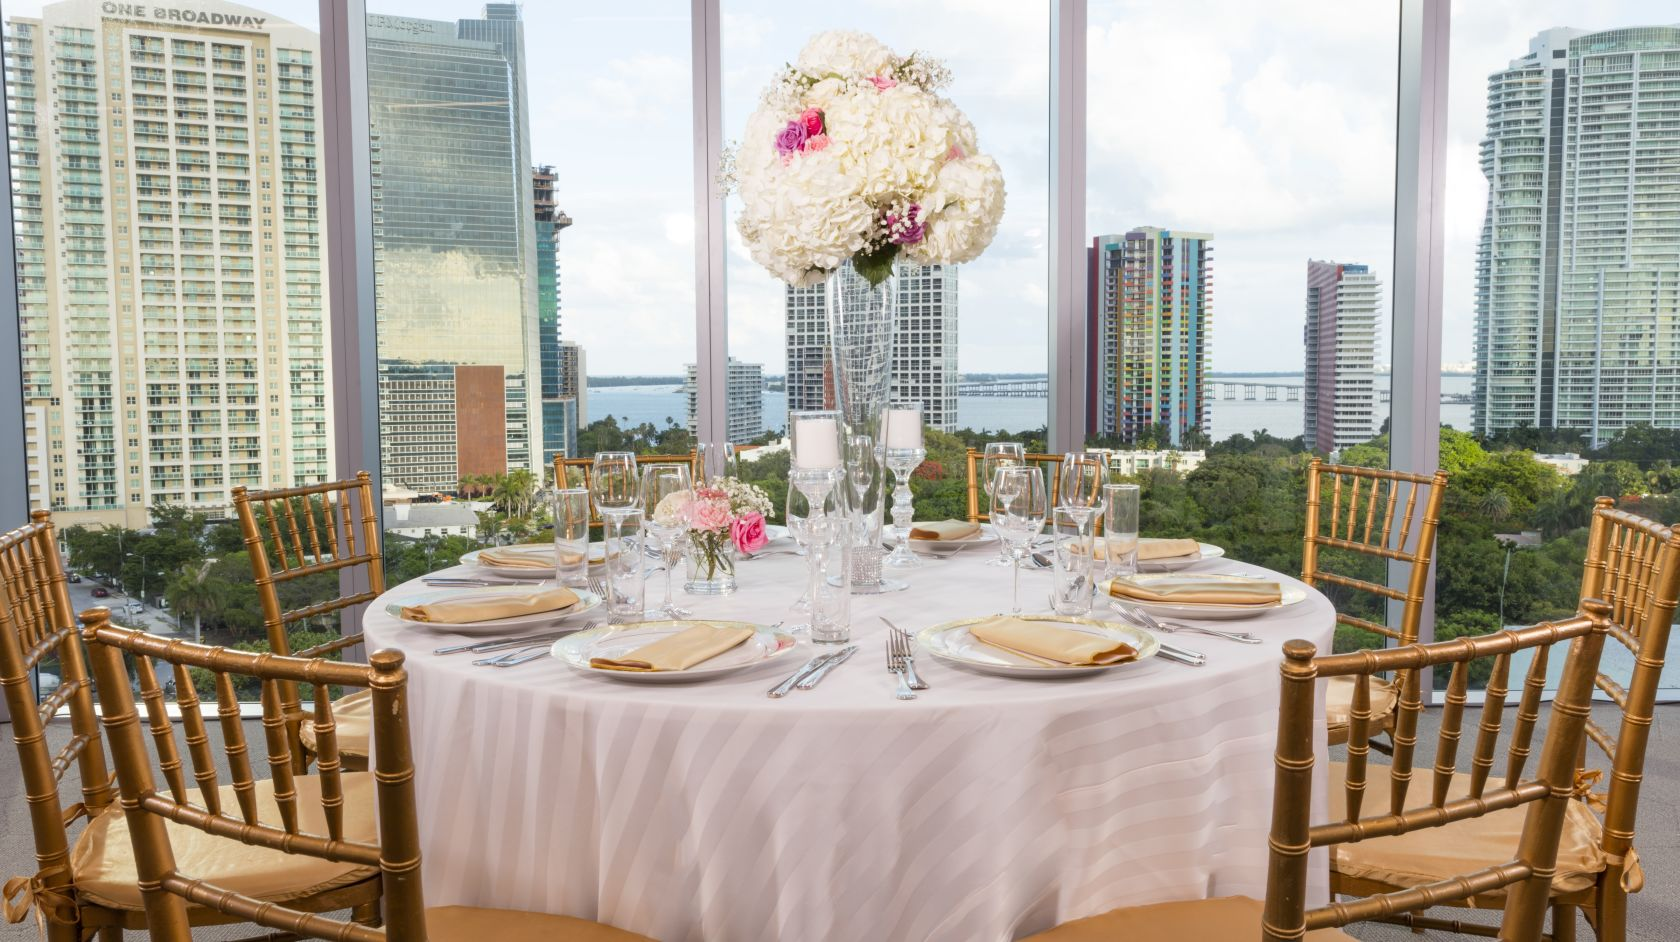 Novotel Miami Brickell wedding venues